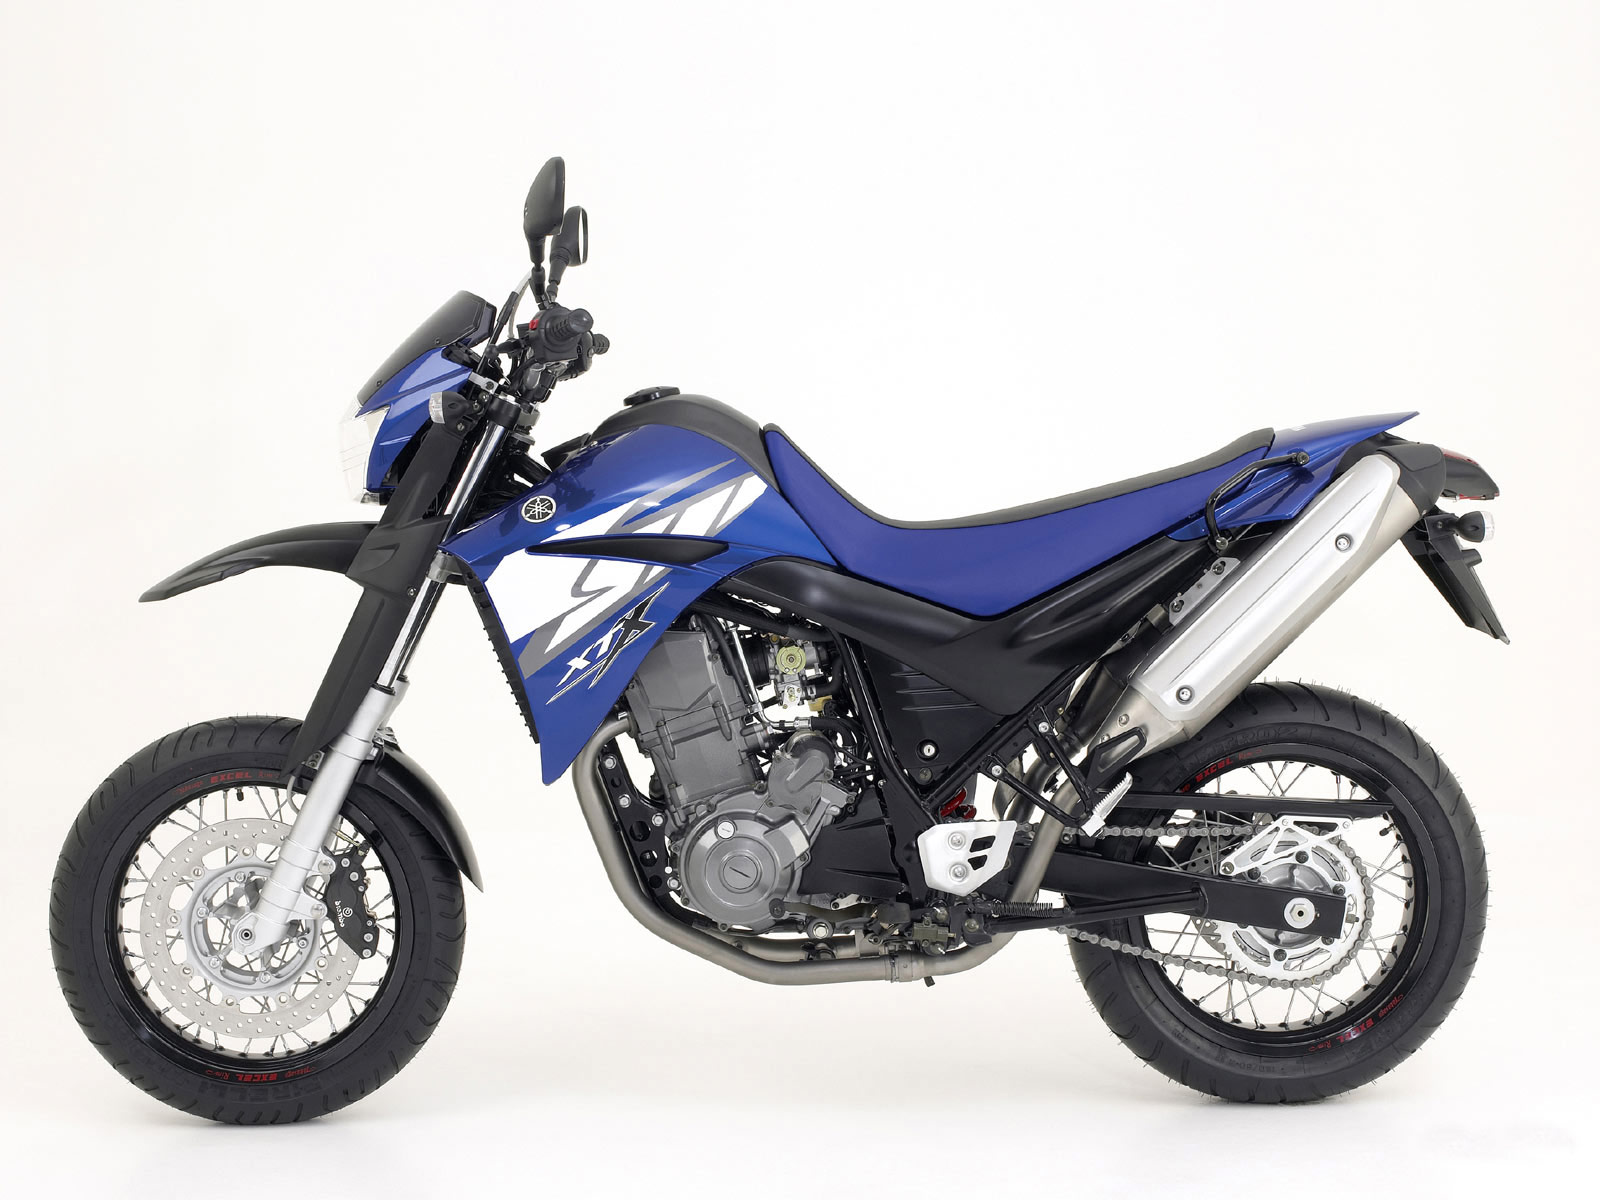 2004 yamaha xt660x supermotard pictures specifications. Black Bedroom Furniture Sets. Home Design Ideas